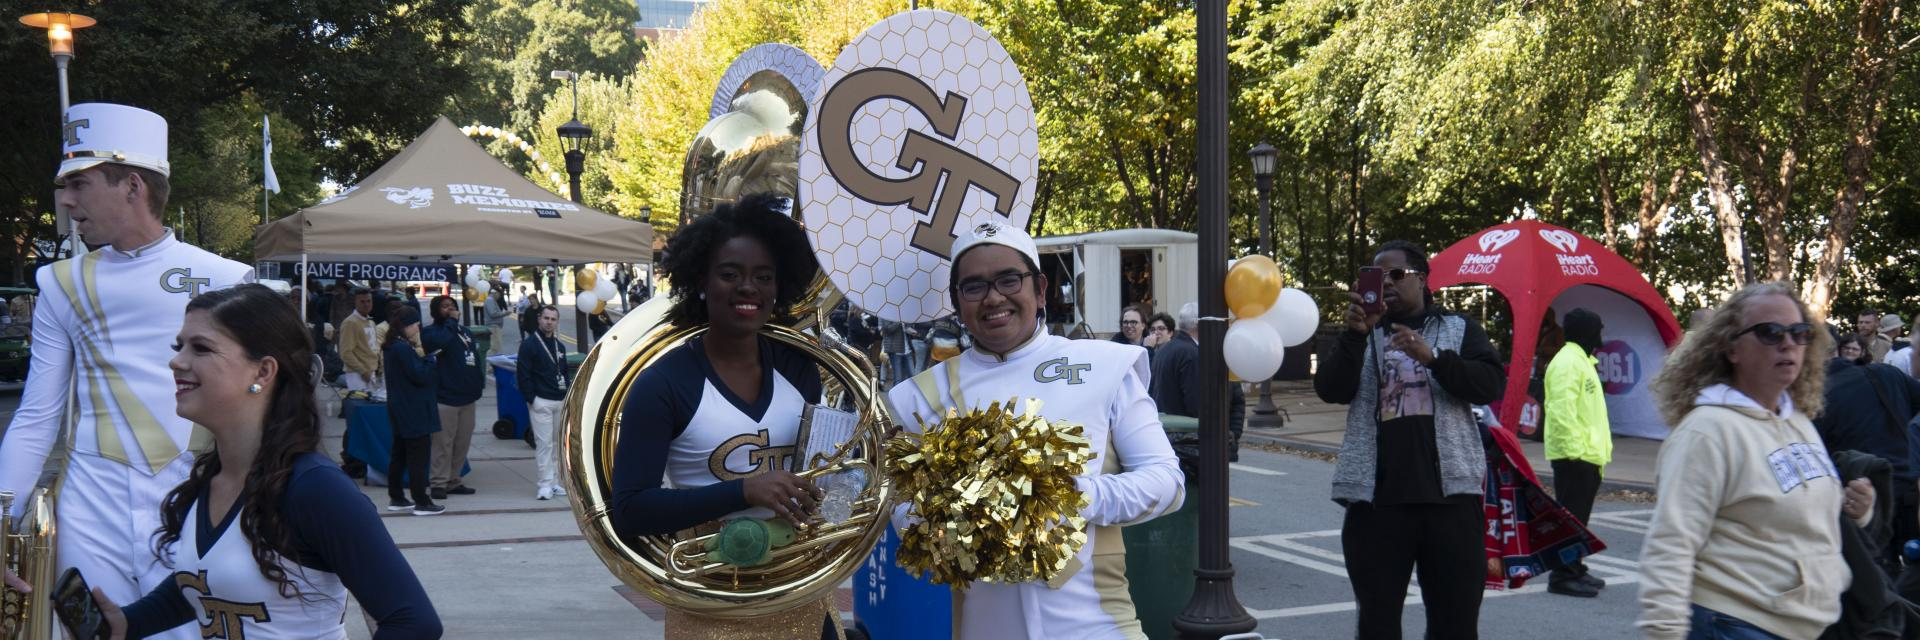 A cheerleader and a tuba player trade instrument and pom poms to pose for a picture.